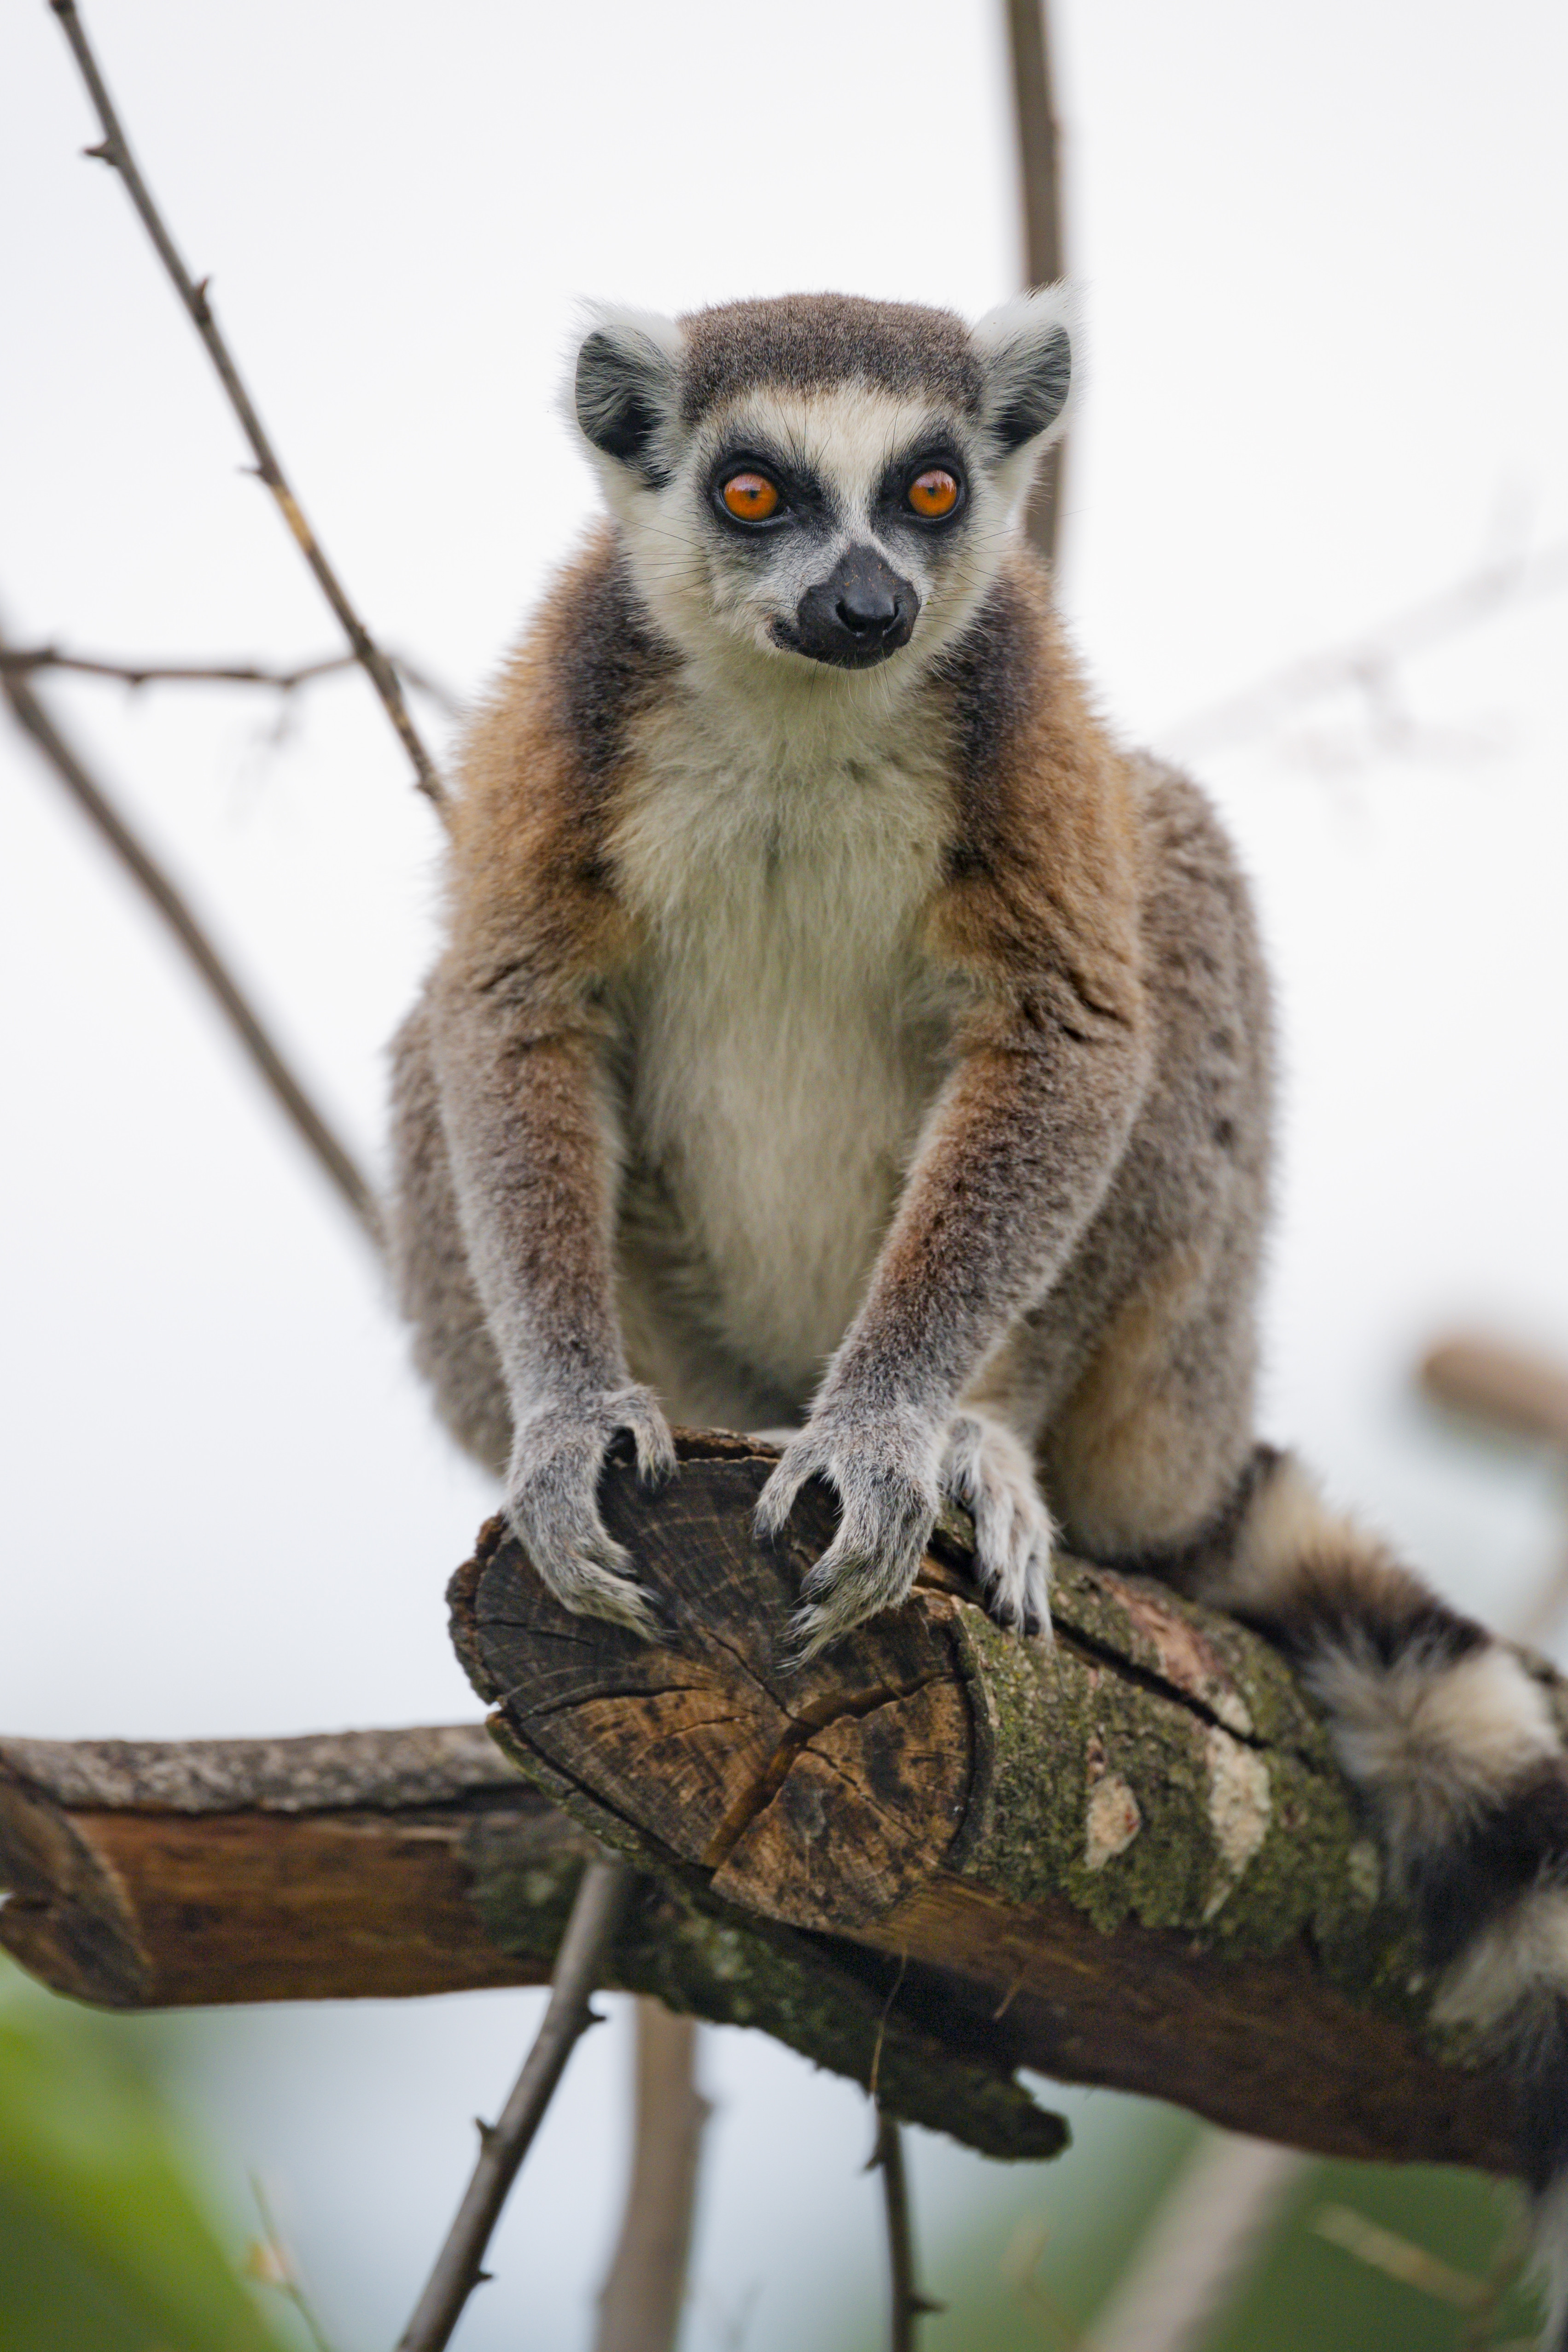 148415 download wallpaper Animals, Lemur, Animal, Sight, Opinion, Funny, Wood, Tree screensavers and pictures for free